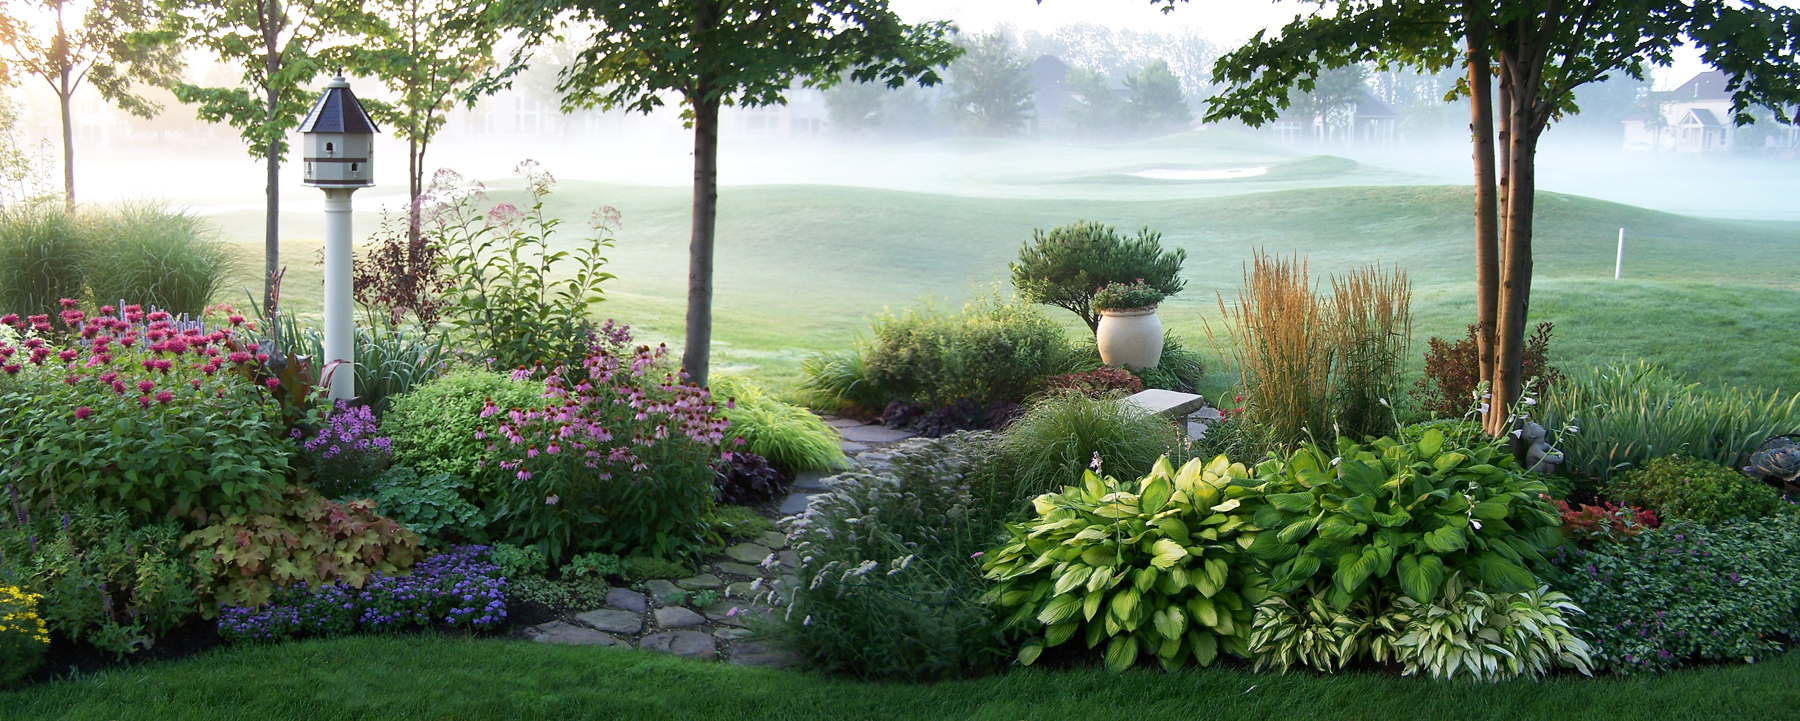 Ohio garden gardening photos inspiration jan meissner for Beautiful gardens landscaping